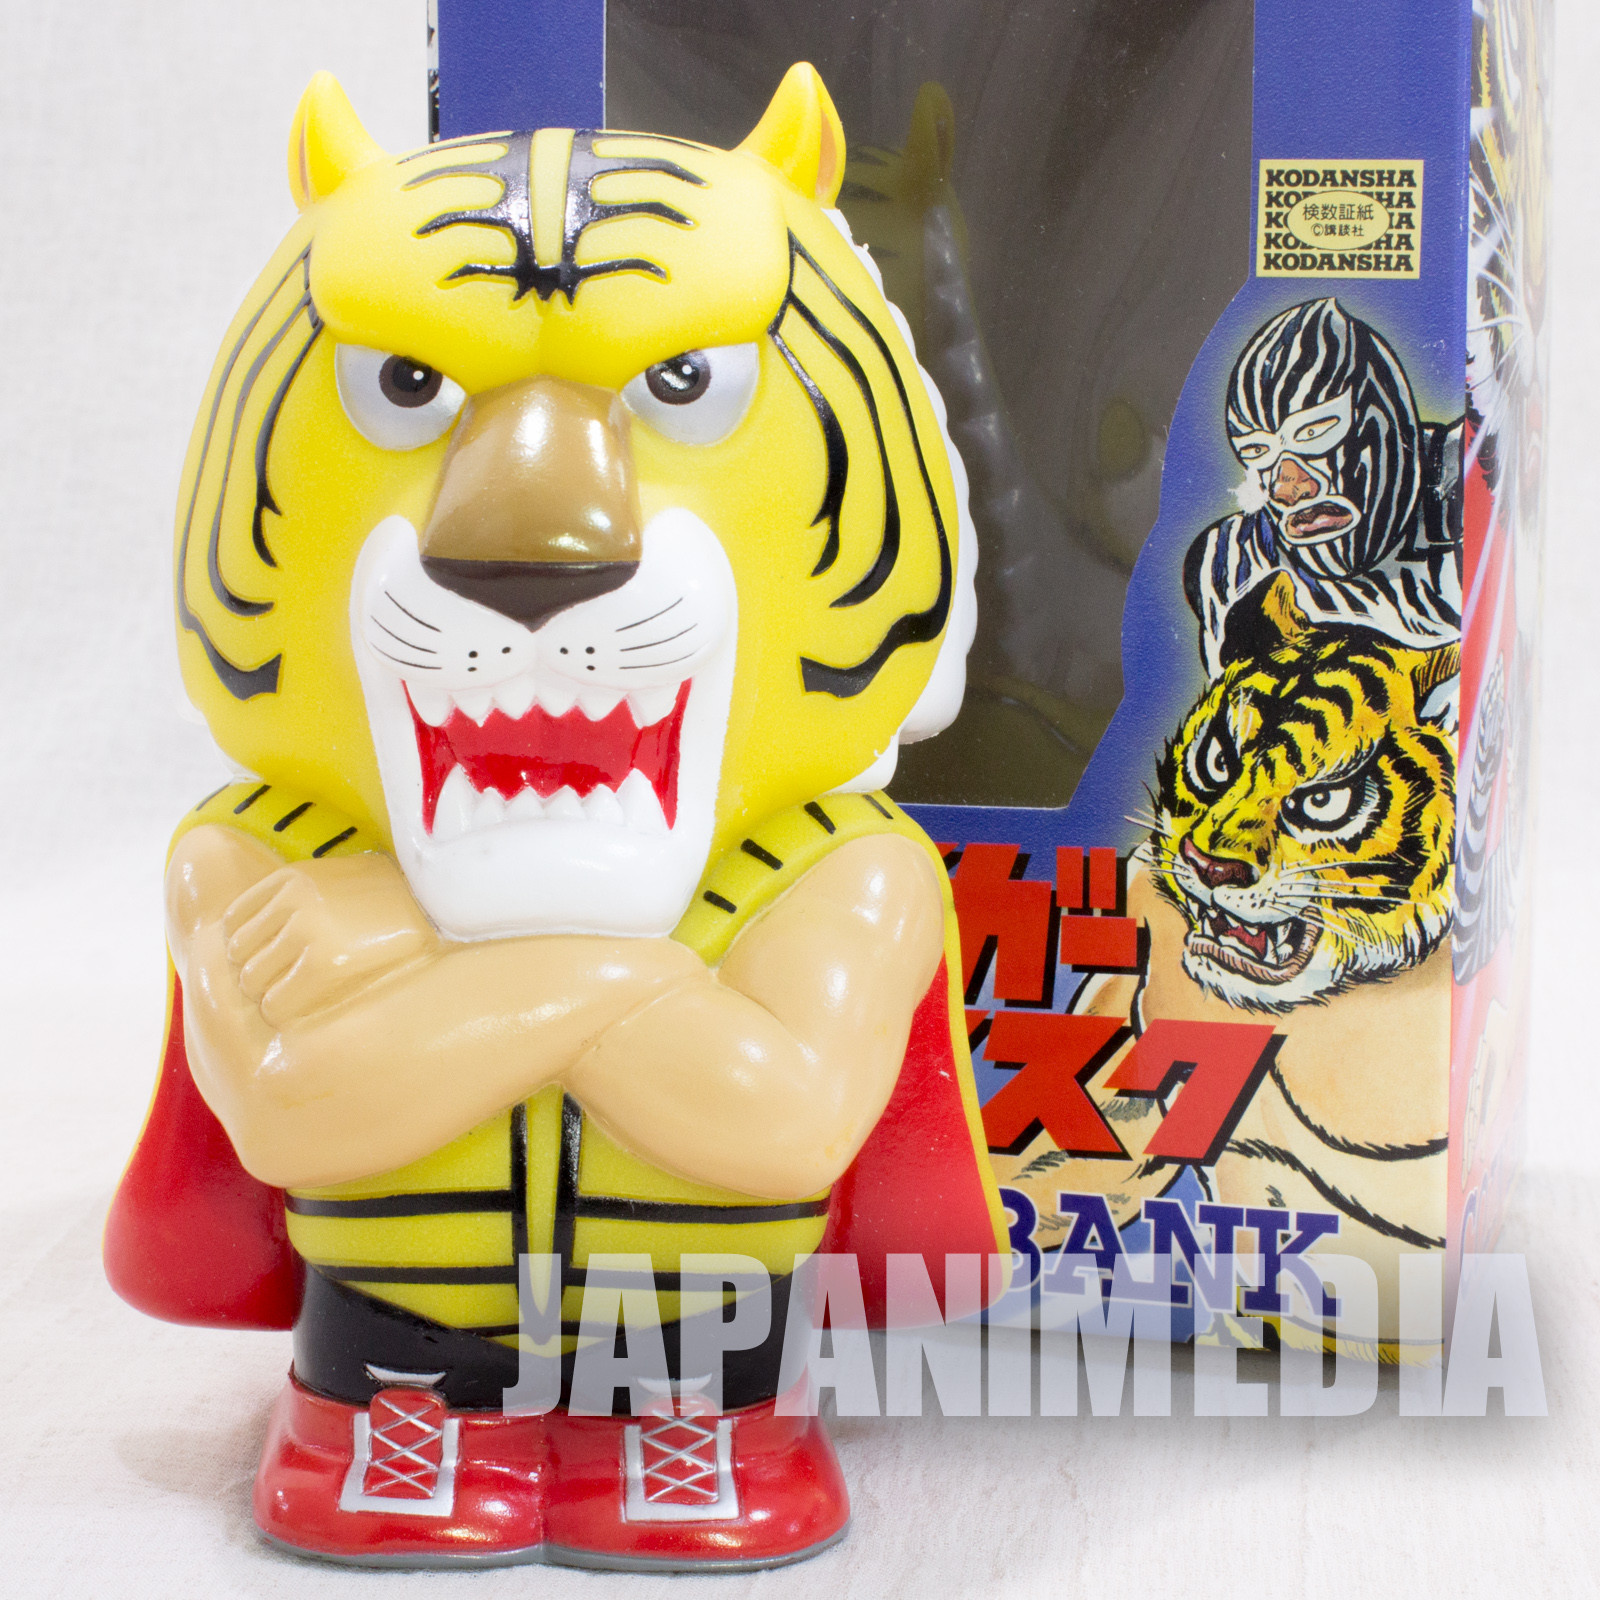 Tiger Mask Soft Vinyl Figure Coin Bank JAPAN ANIME MANGA Pro Wrestling